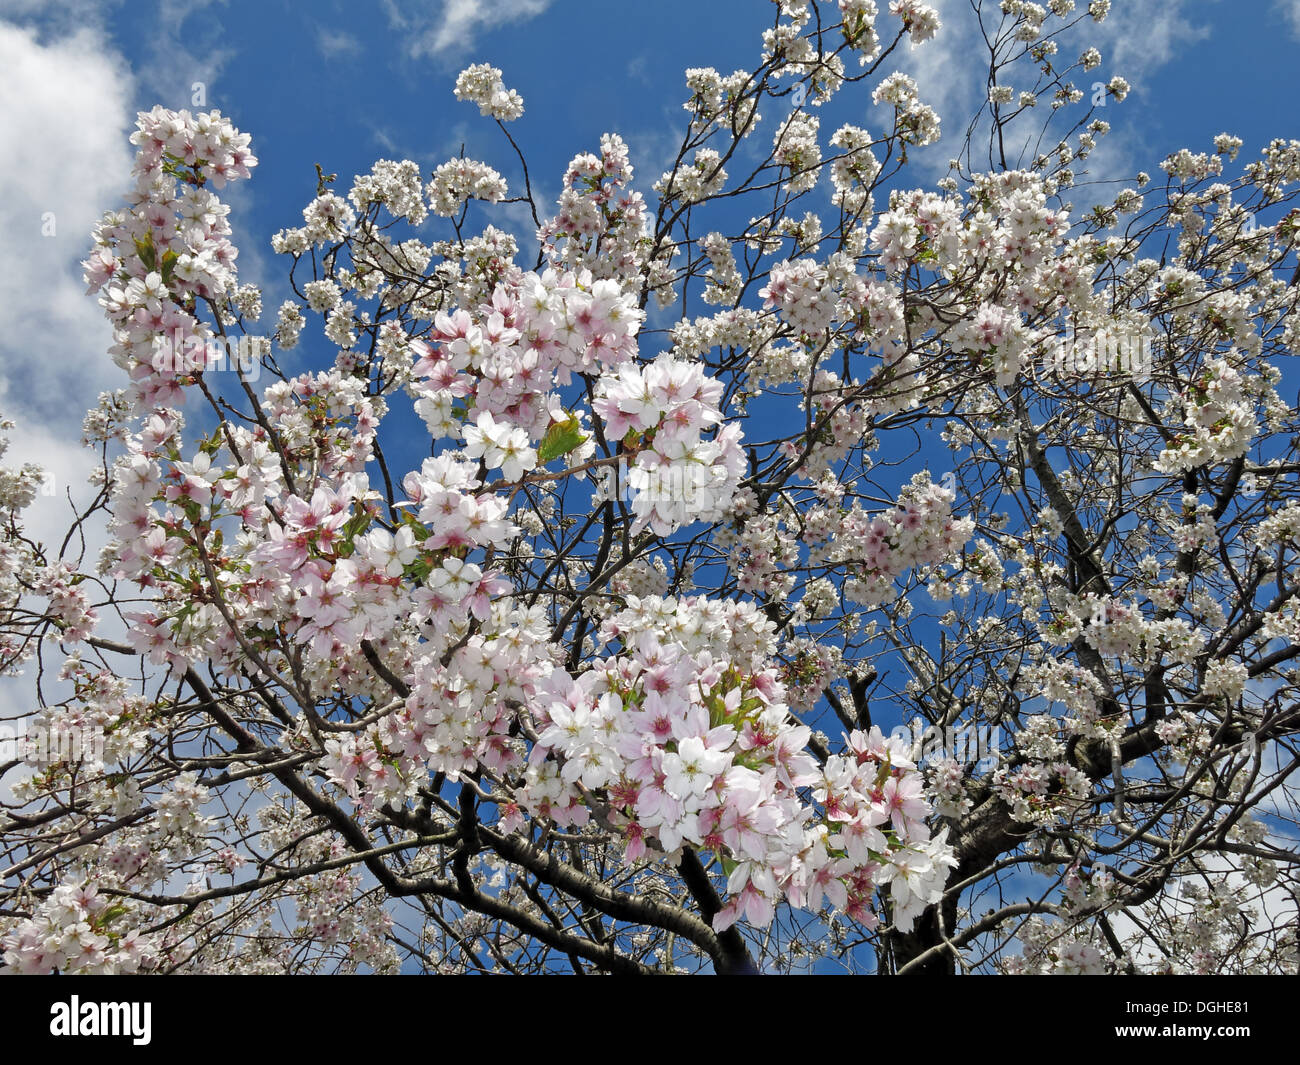 season,seasons,4seasons,four,skies,UK,Blossom,flowers,against,a,deep,blue,sky,England,United,Kingdom,western,hemisphere,life,springs,forth,love,good,to,be,alive,bloom,blooming,sprung,has,fruit,tree,trees,Sakura,Japan,Japanese,blosoms,almond,Gotonysmith,pollen,to,pollinators,insect,insects,bees,cross,polination,initiate,cross-pollination,necessary,to,reproduce,by,producing,fruit,Buy Pictures of,Buy Images Of